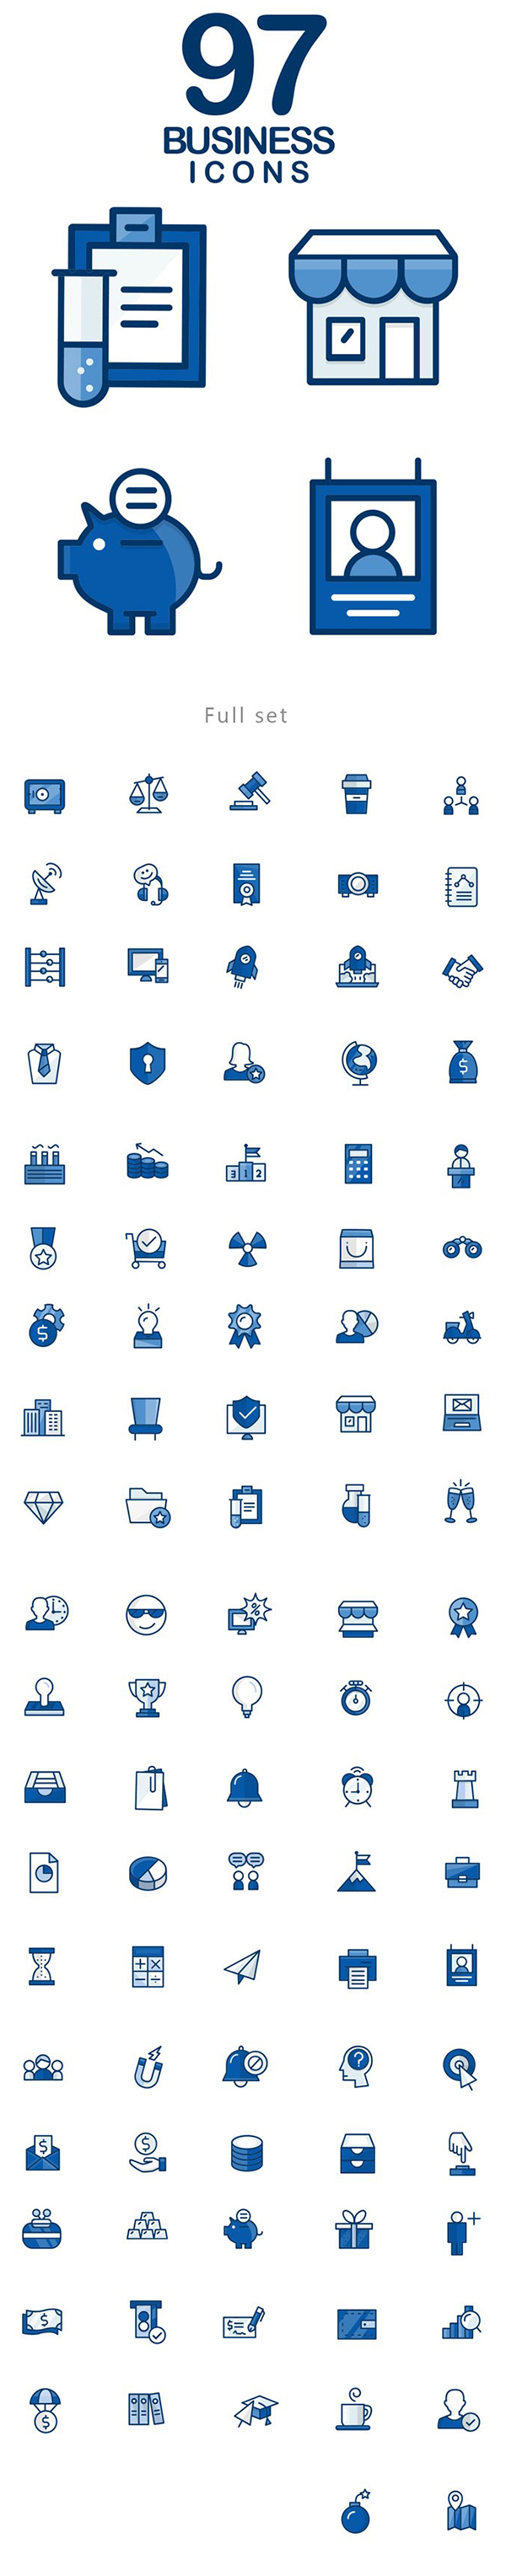 Free 97 Business Icons